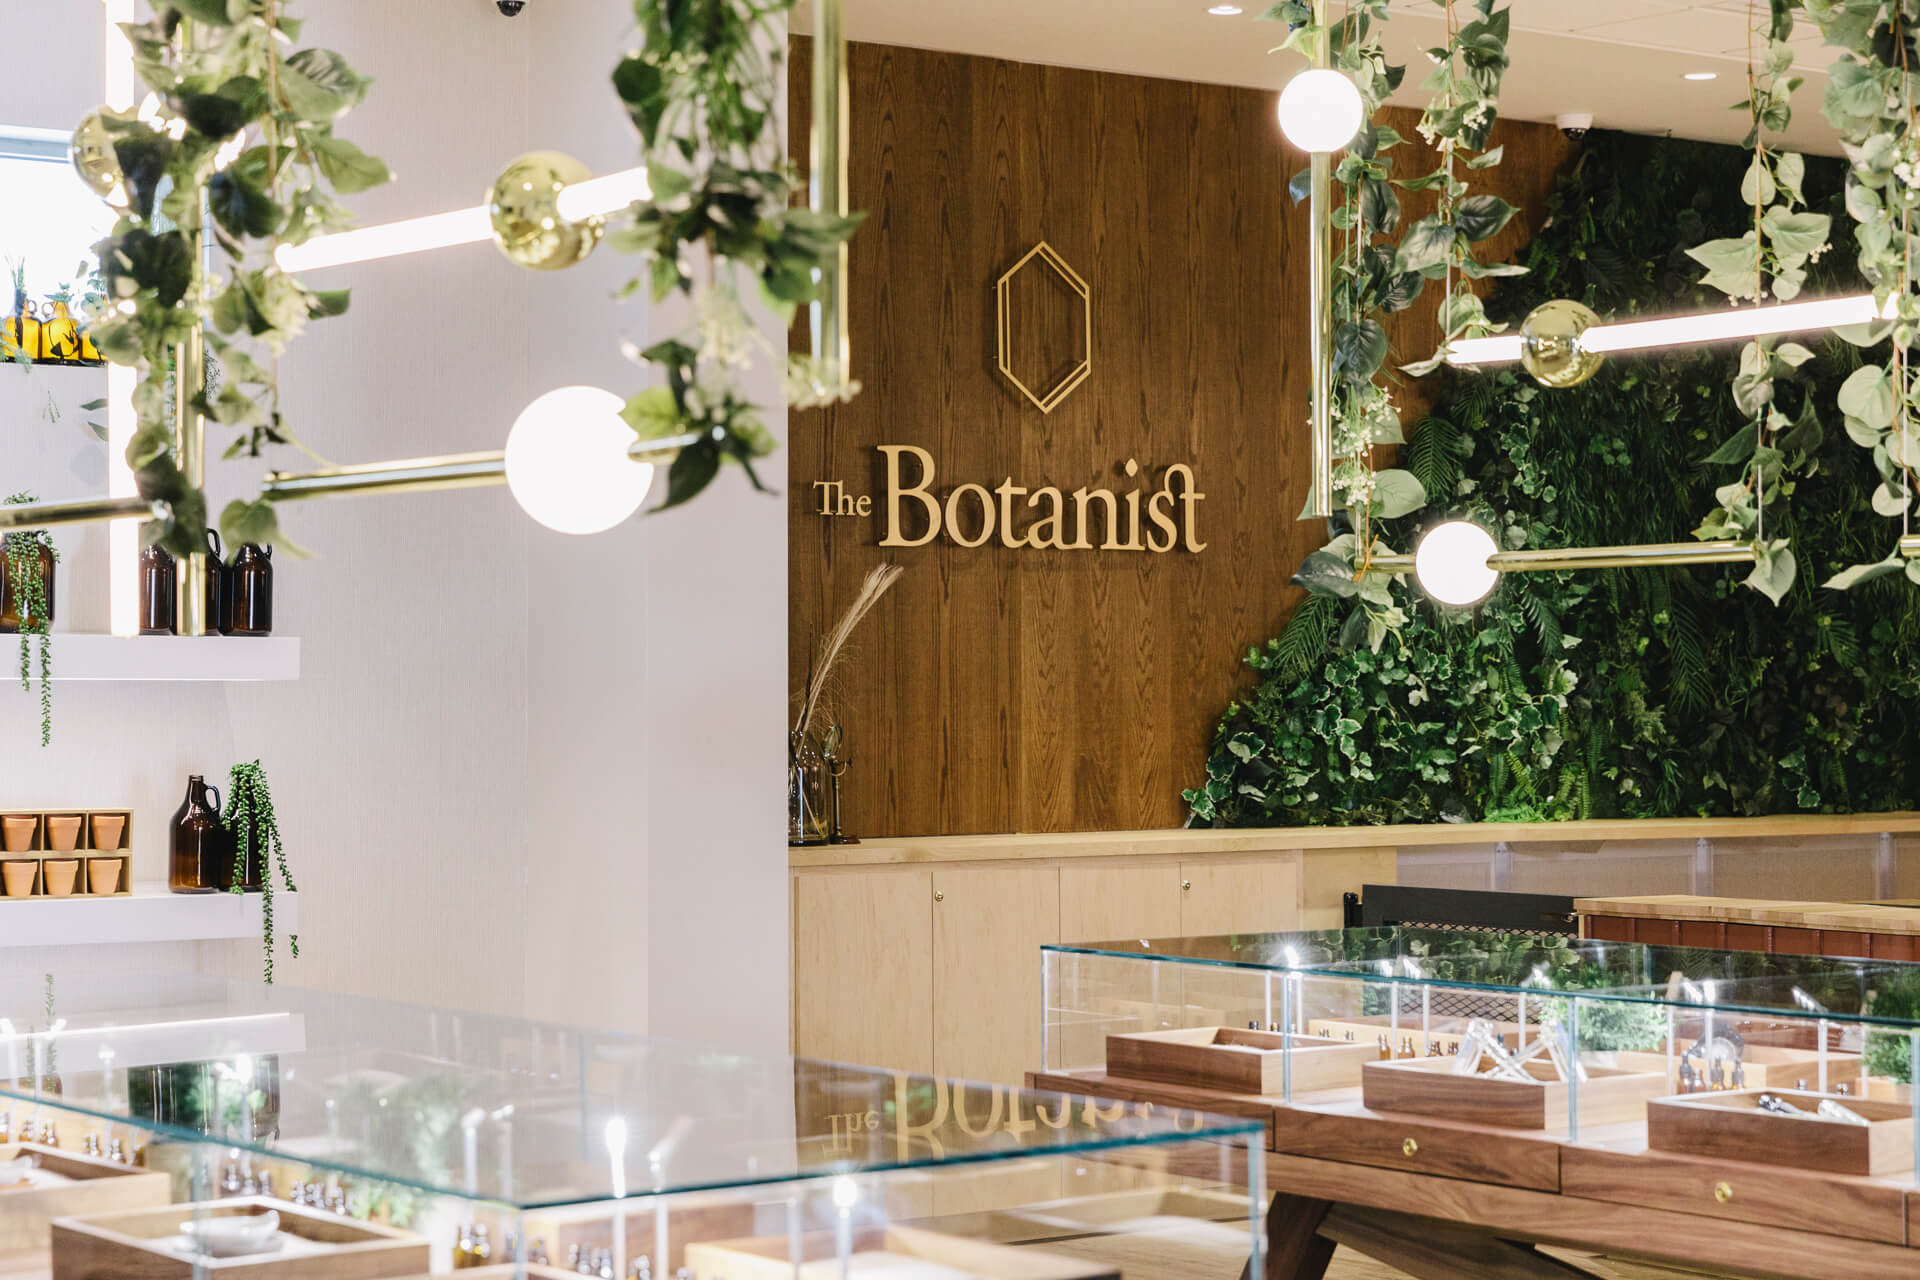 The Botanist Worchester MA by Little Giant